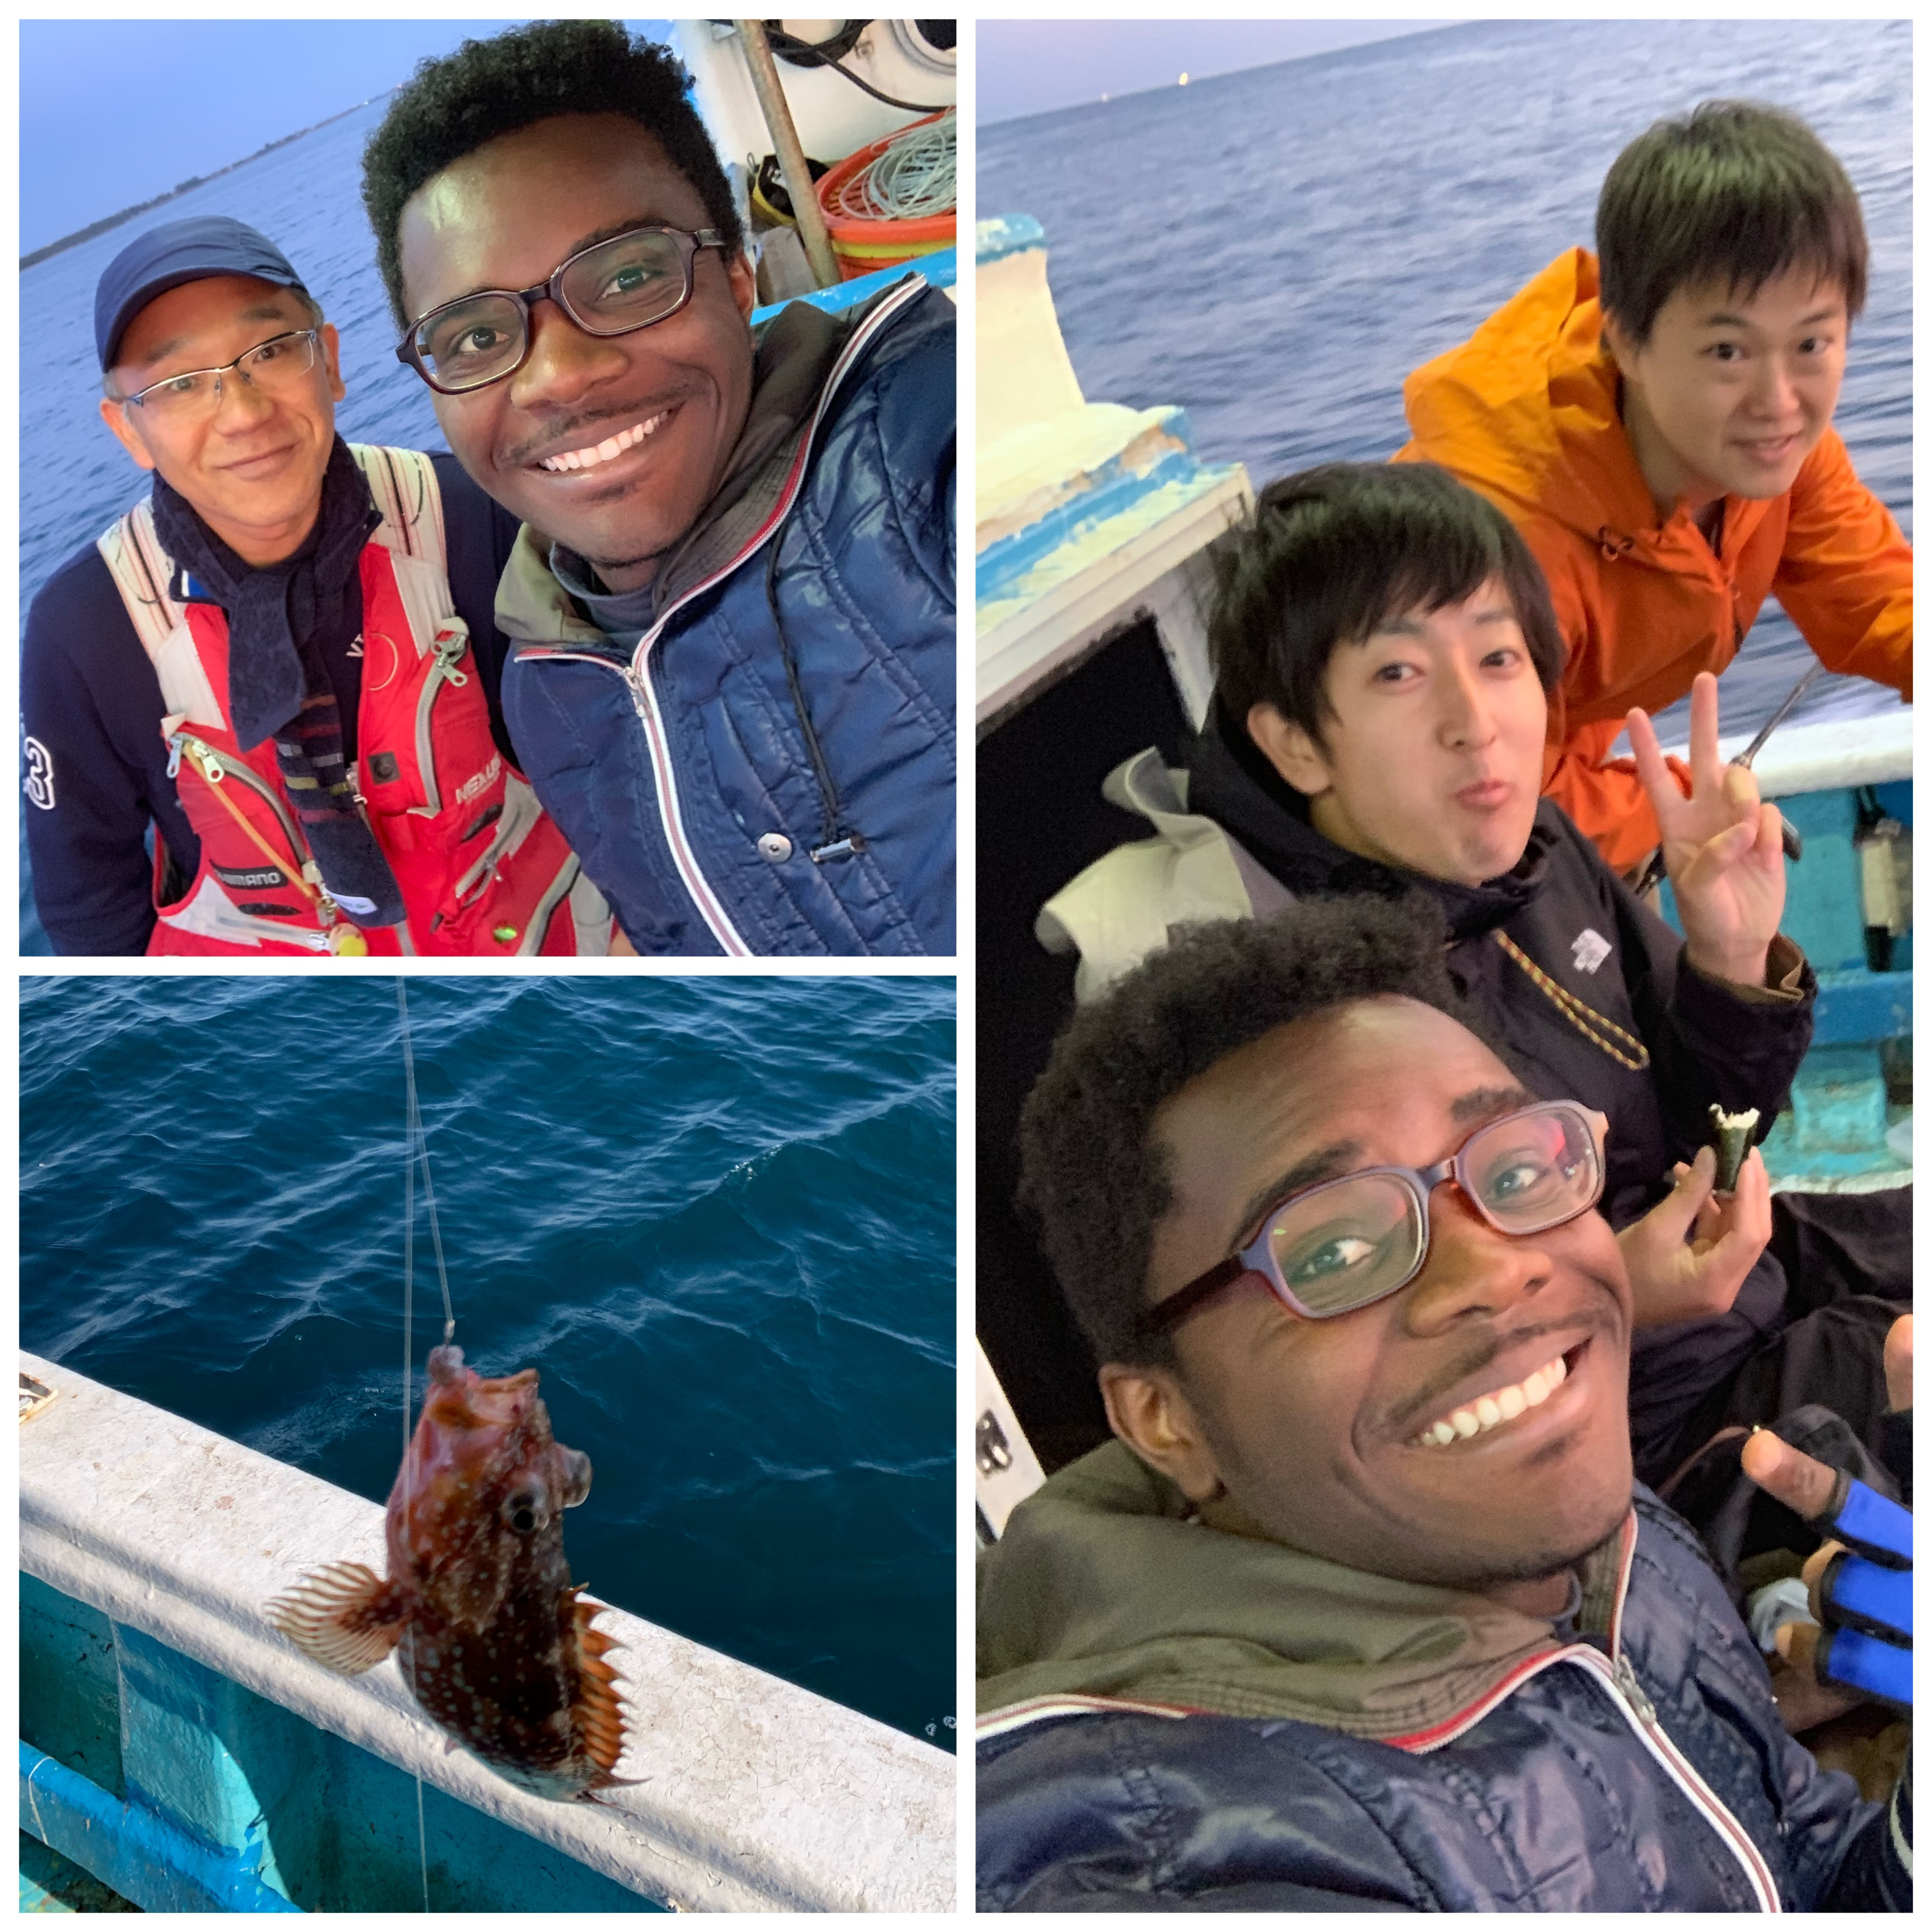 Fishing trip with colleagues